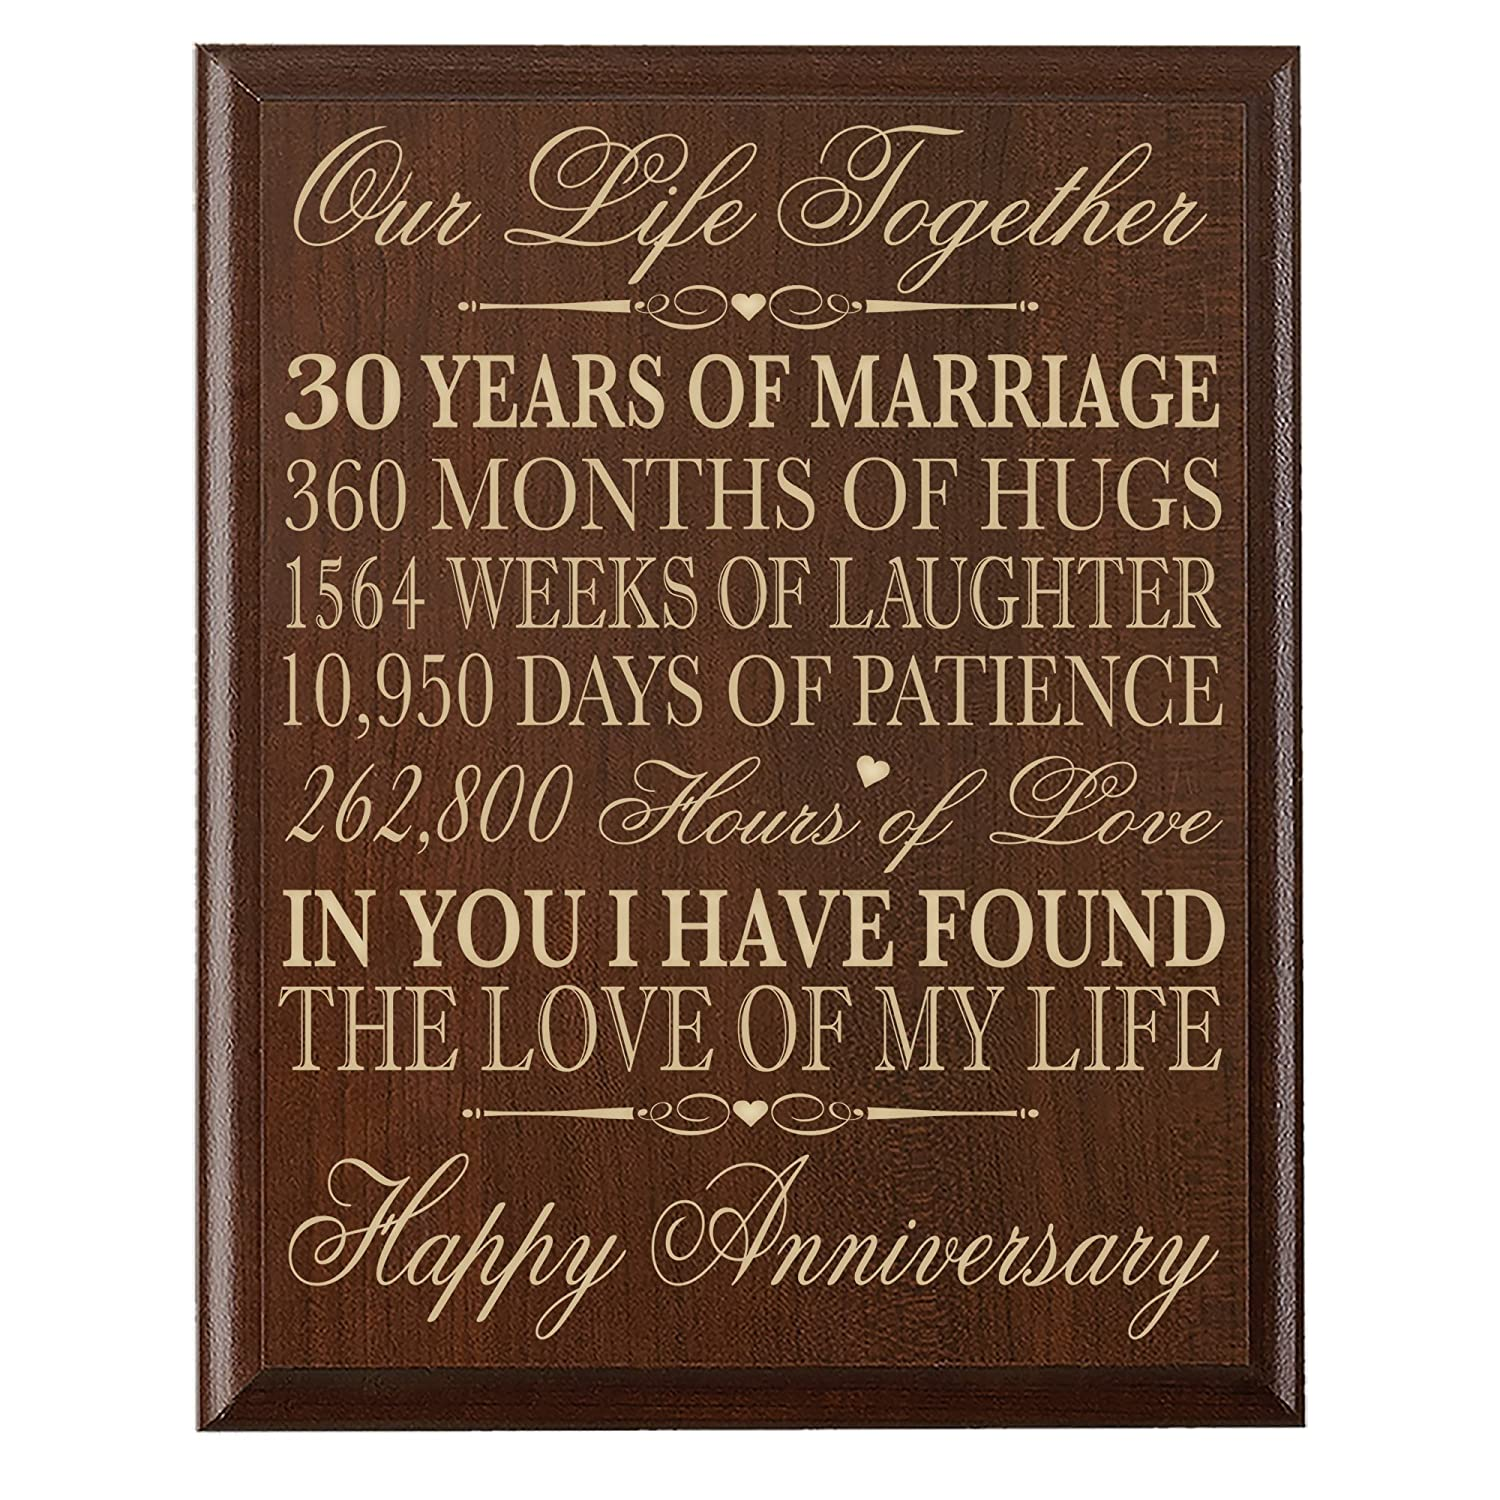 """LifeSong Milestones 30th Anniversary Gift ideas Couple Parents 30 year Anniversary Gifts ideas for him her Wall Plaque 12"""" x 15"""" By (Walnut)"""